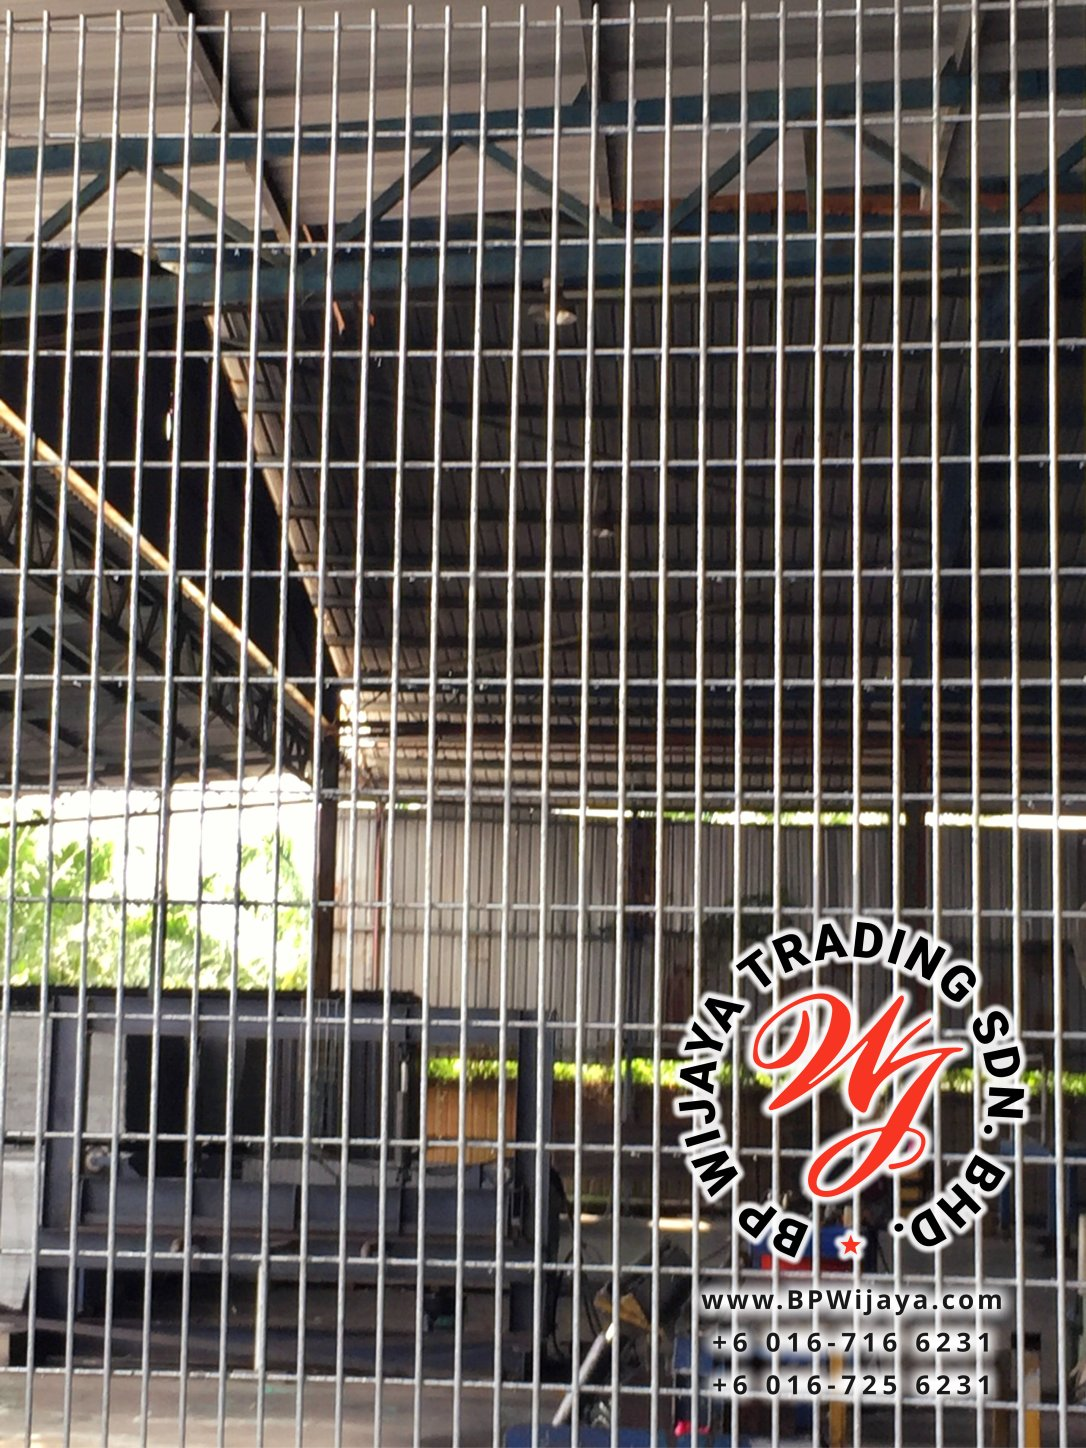 BP Wijaya Trading Sdn Bhd Malaysia manufacturer Distributor safety fences building materials Anti Climb Fence ACF 25 Mesh Wire Fence ACF Fence BRC from Johor Batu Pahat B01